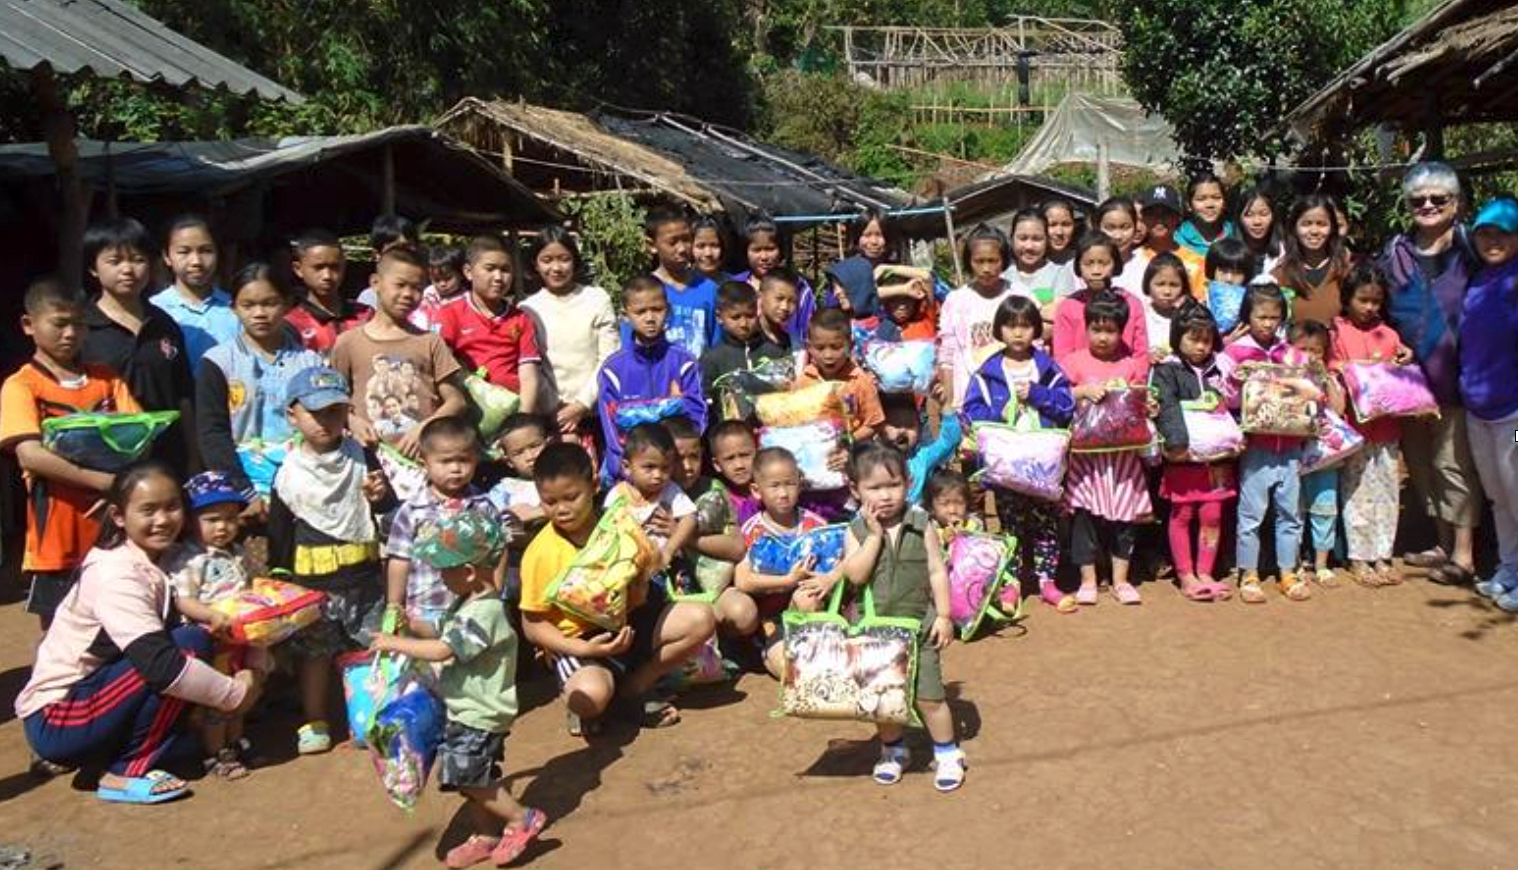 Group photo with children bearing blankets.